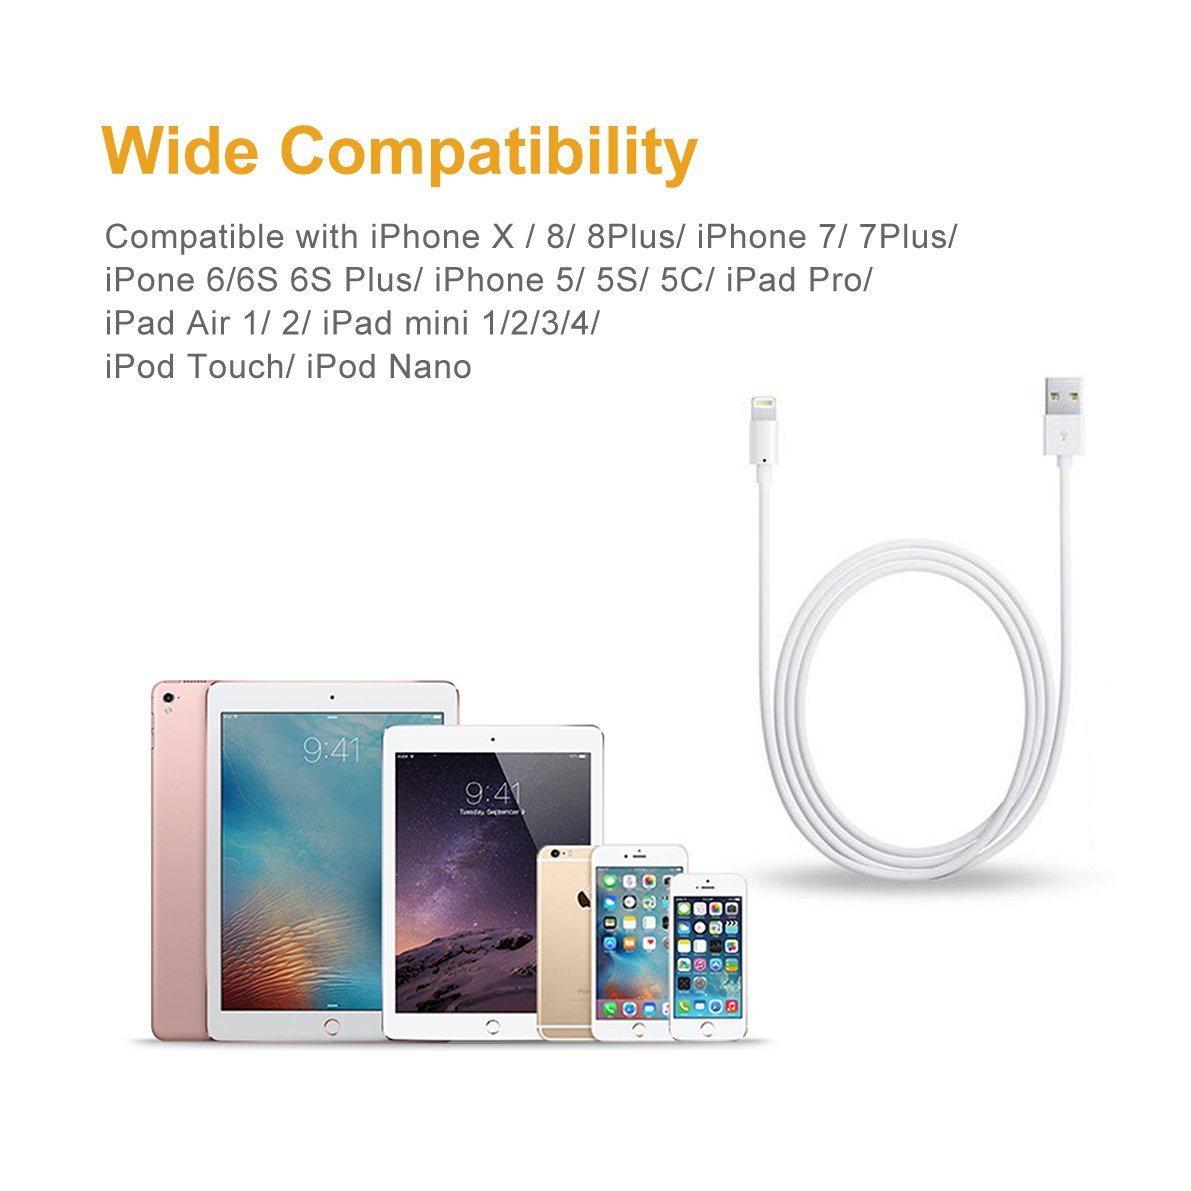 For iPhone Charger Cable BUDGET & GOOD 8 Pin Lightning to USB Cable 3 Pack 6ft Certified iPhone Charging Cord for iPhone X 8 8 Plus 7 7 Plus 6s 6s Plus 6 6 Plus SE 5s 5c 5 iPad iPod White by BUDGET & GOOD (Image #7)